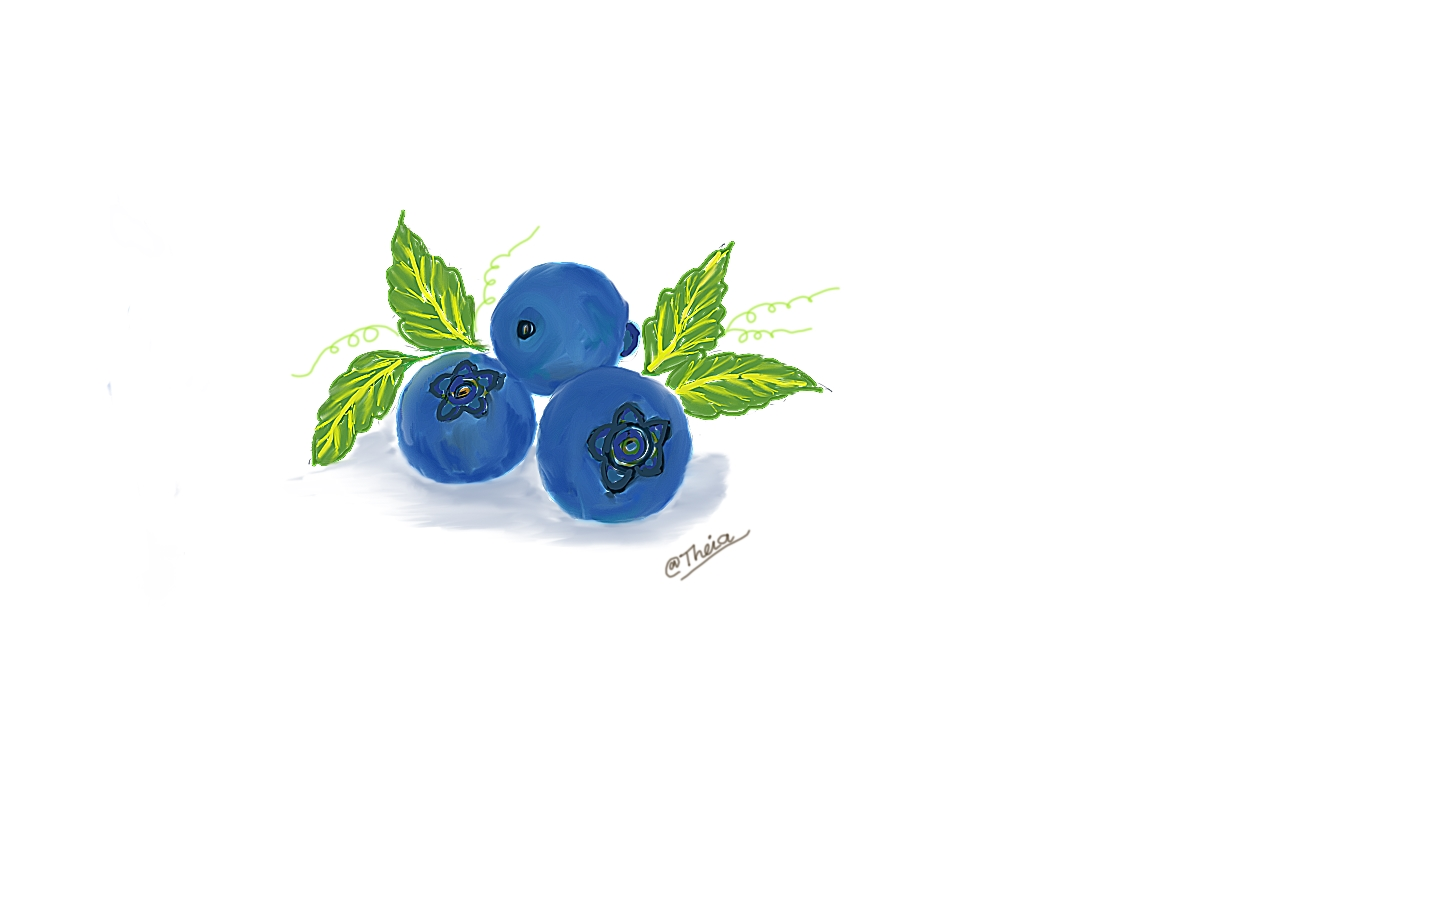 1440x917 Drawing Challenge 3 Blueberrye Of The Healthiest Fruits